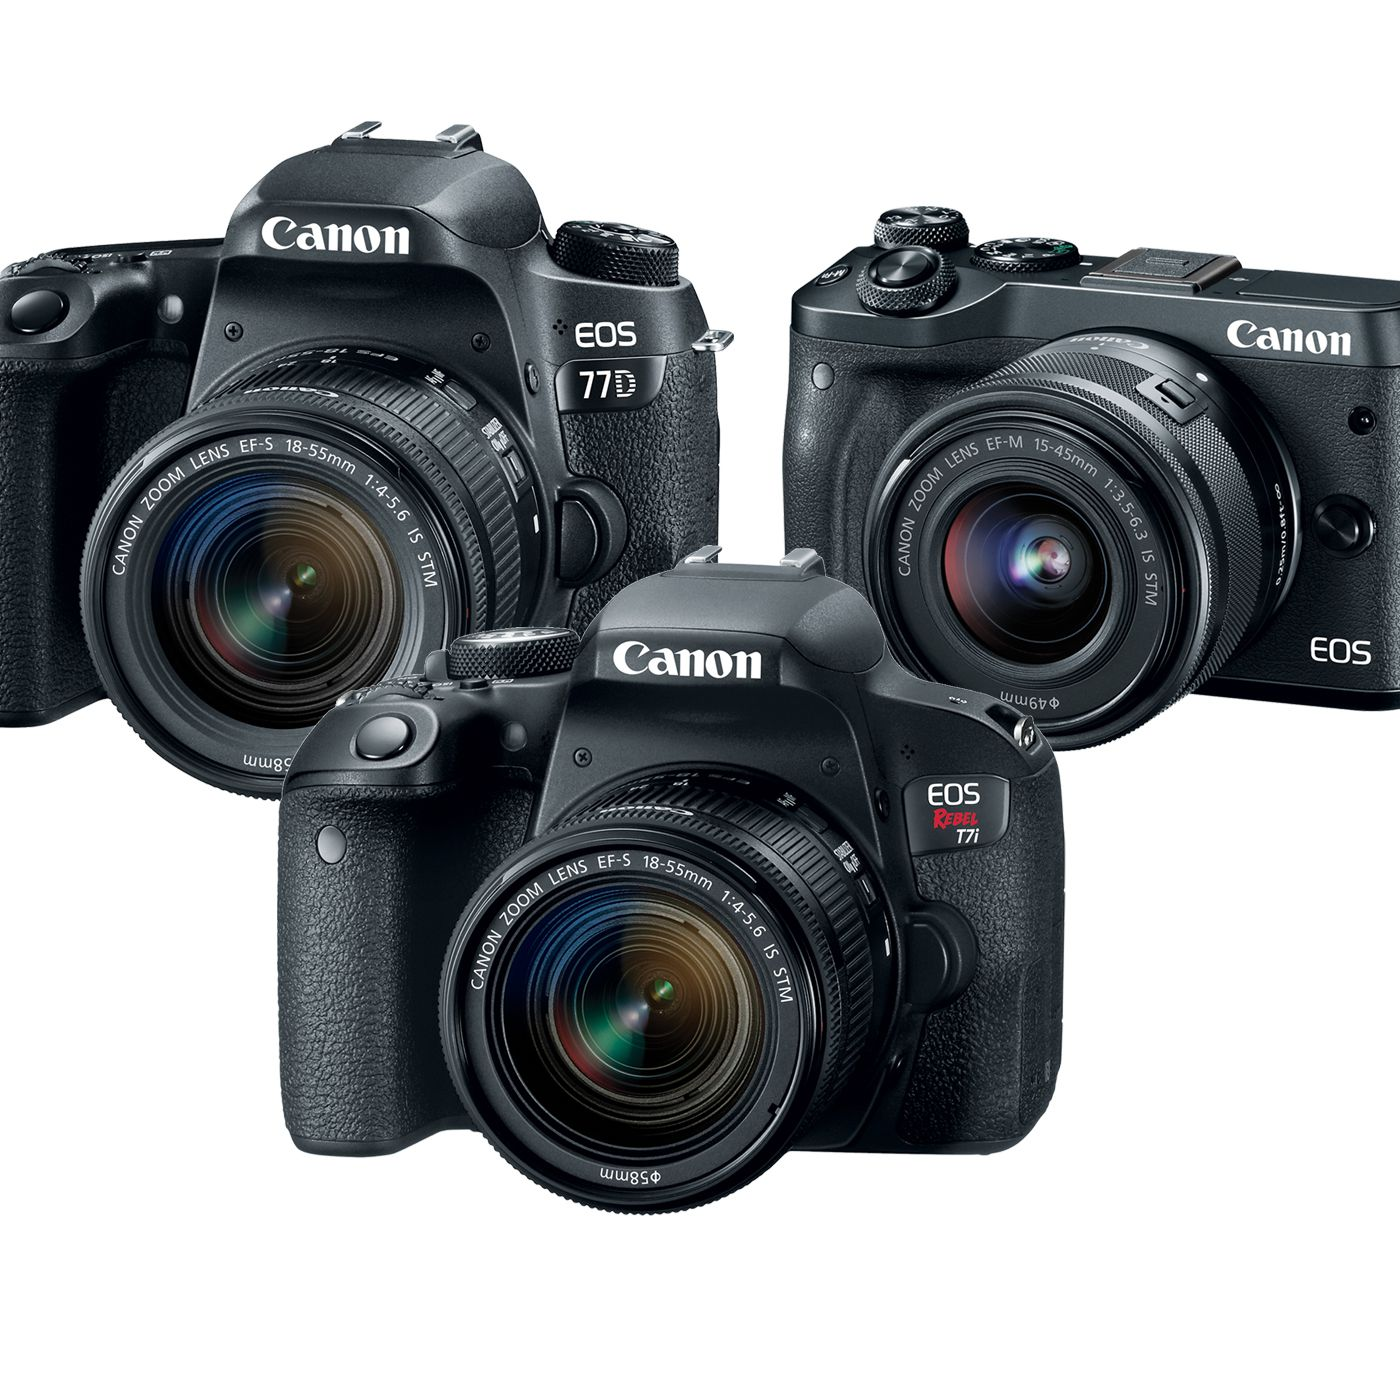 Canon announces three new cameras and none of them shoot 4K